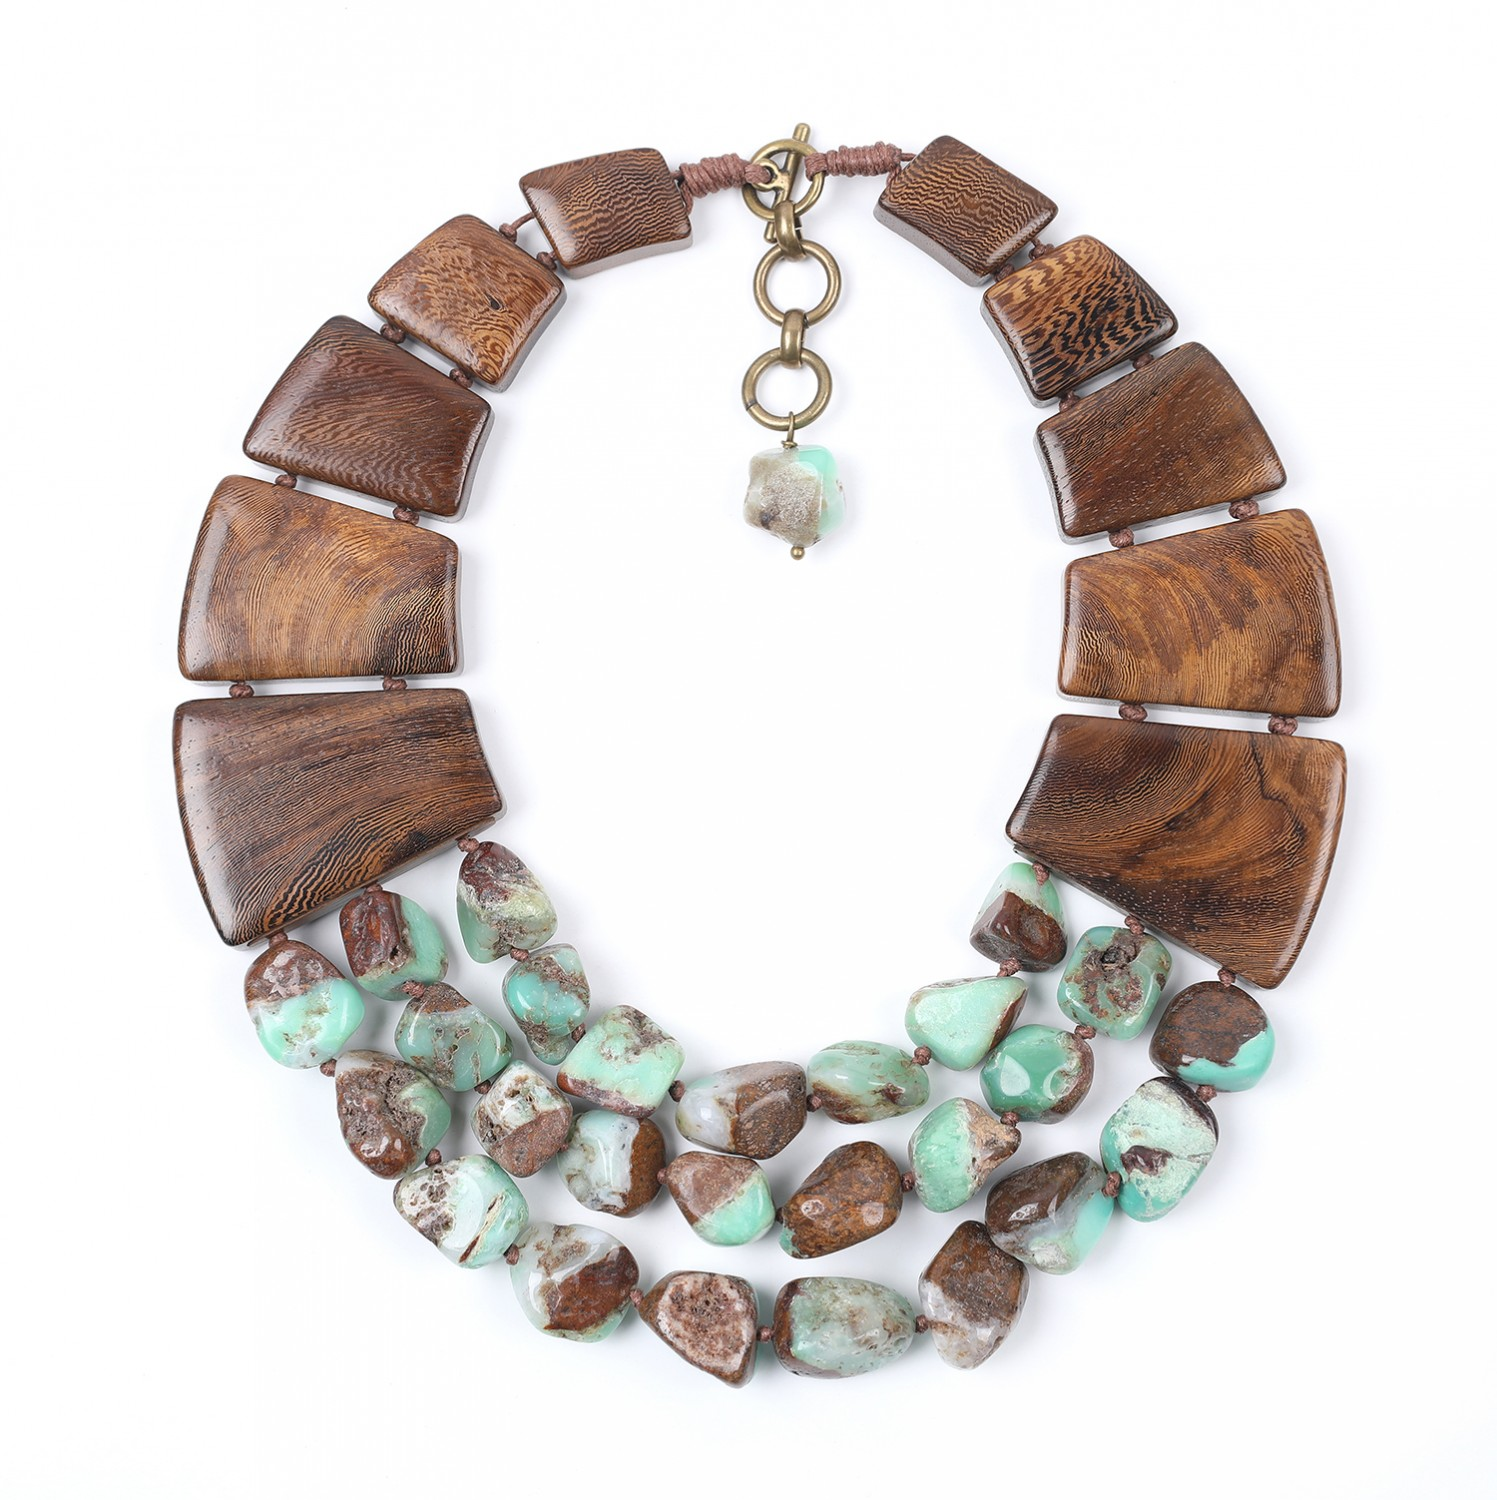 Necklace limited edition chrysoprase